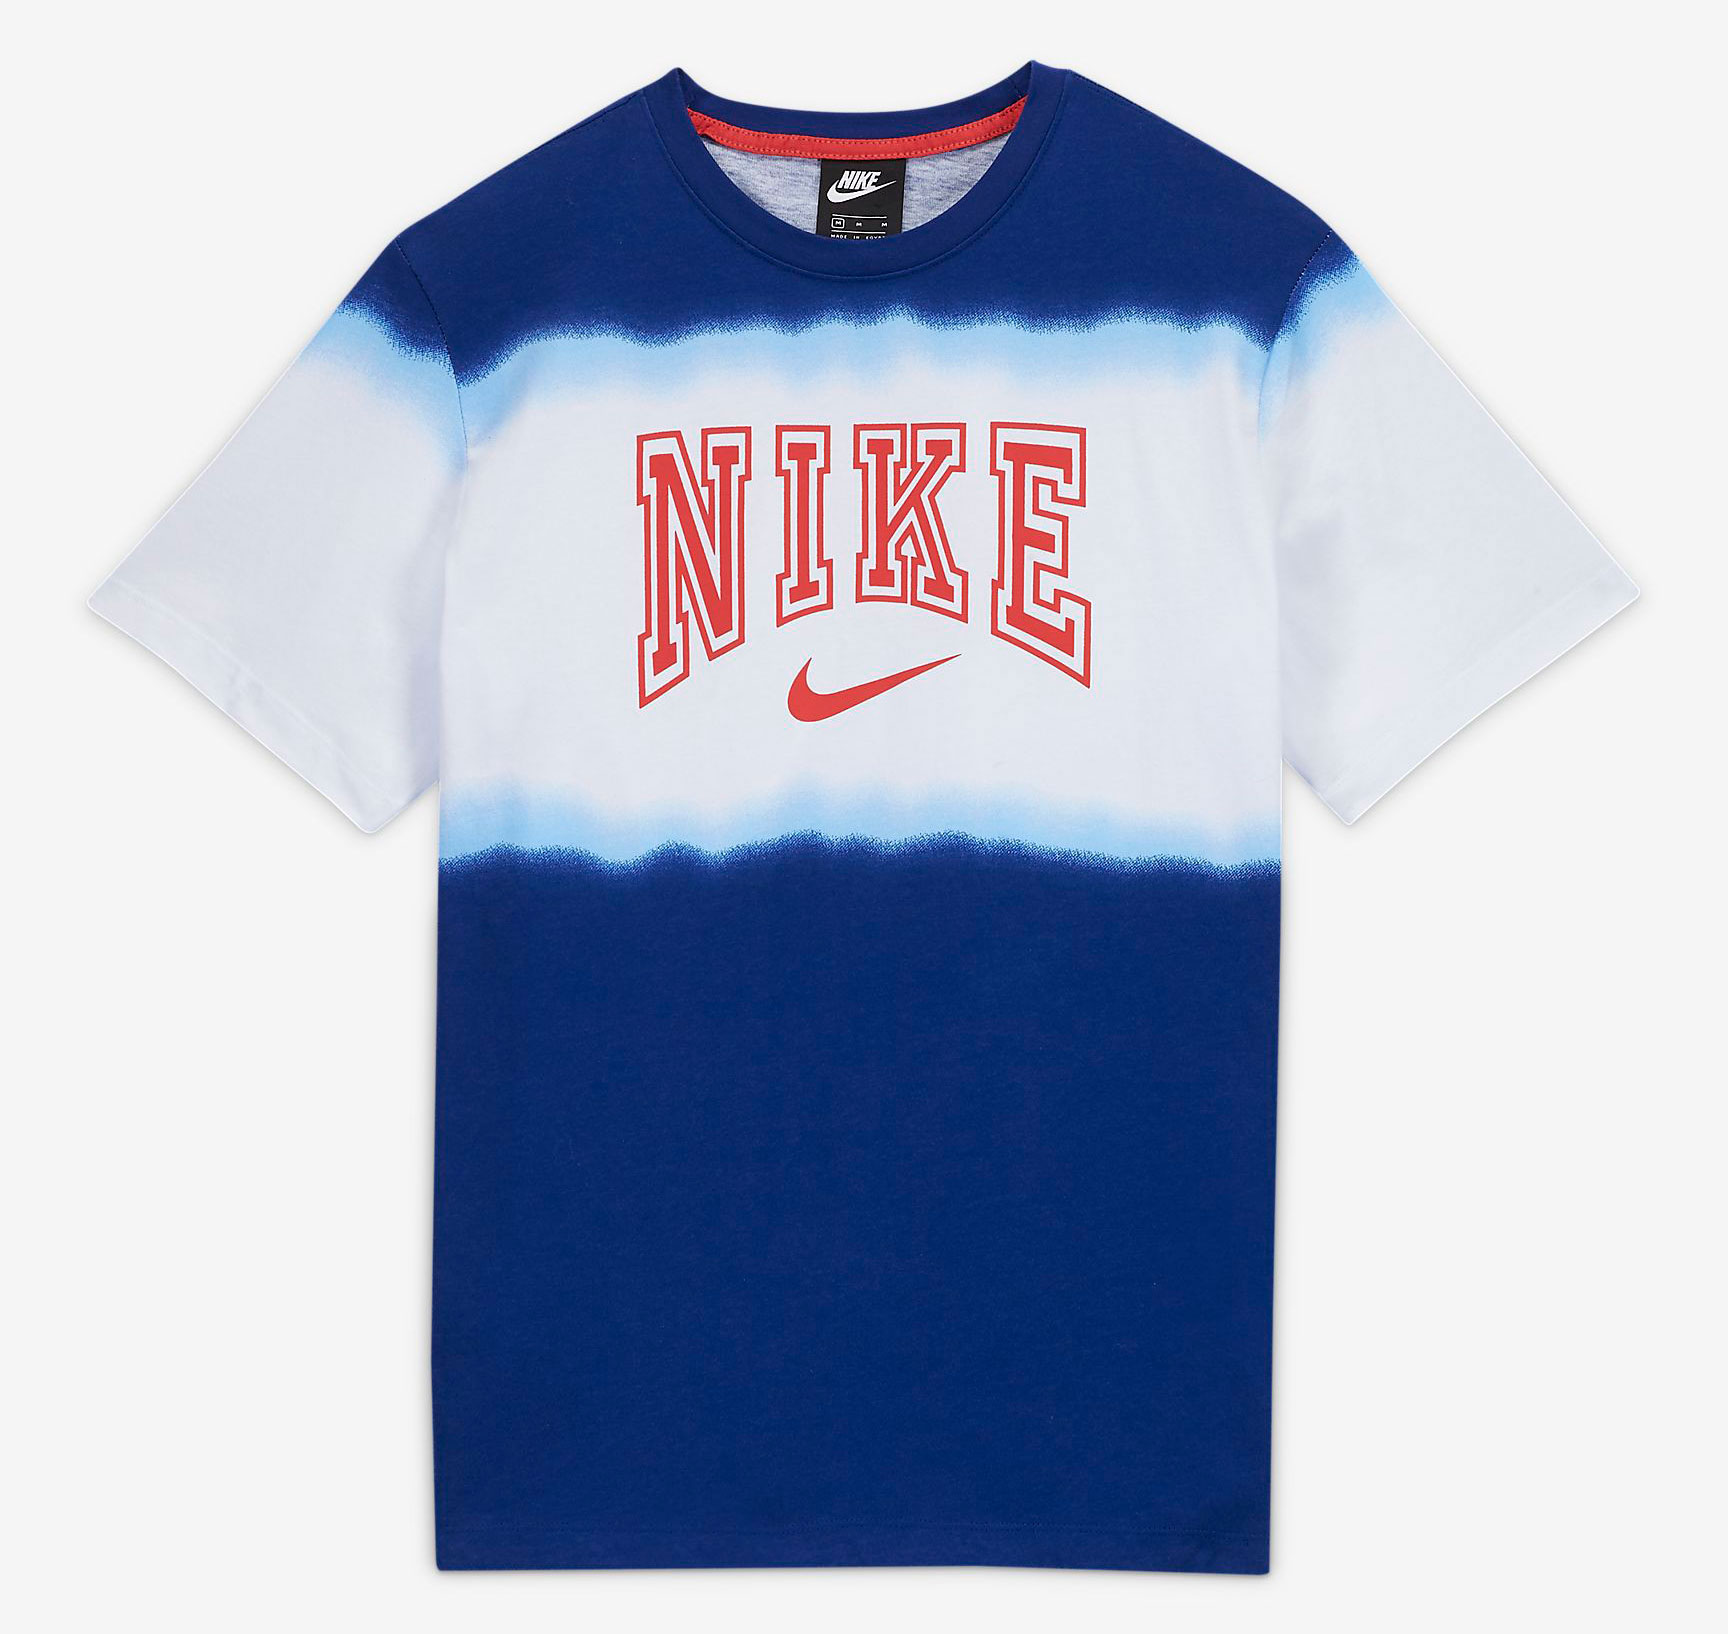 nike-kybrid-s2-what-the-usa-matching-shirt-1